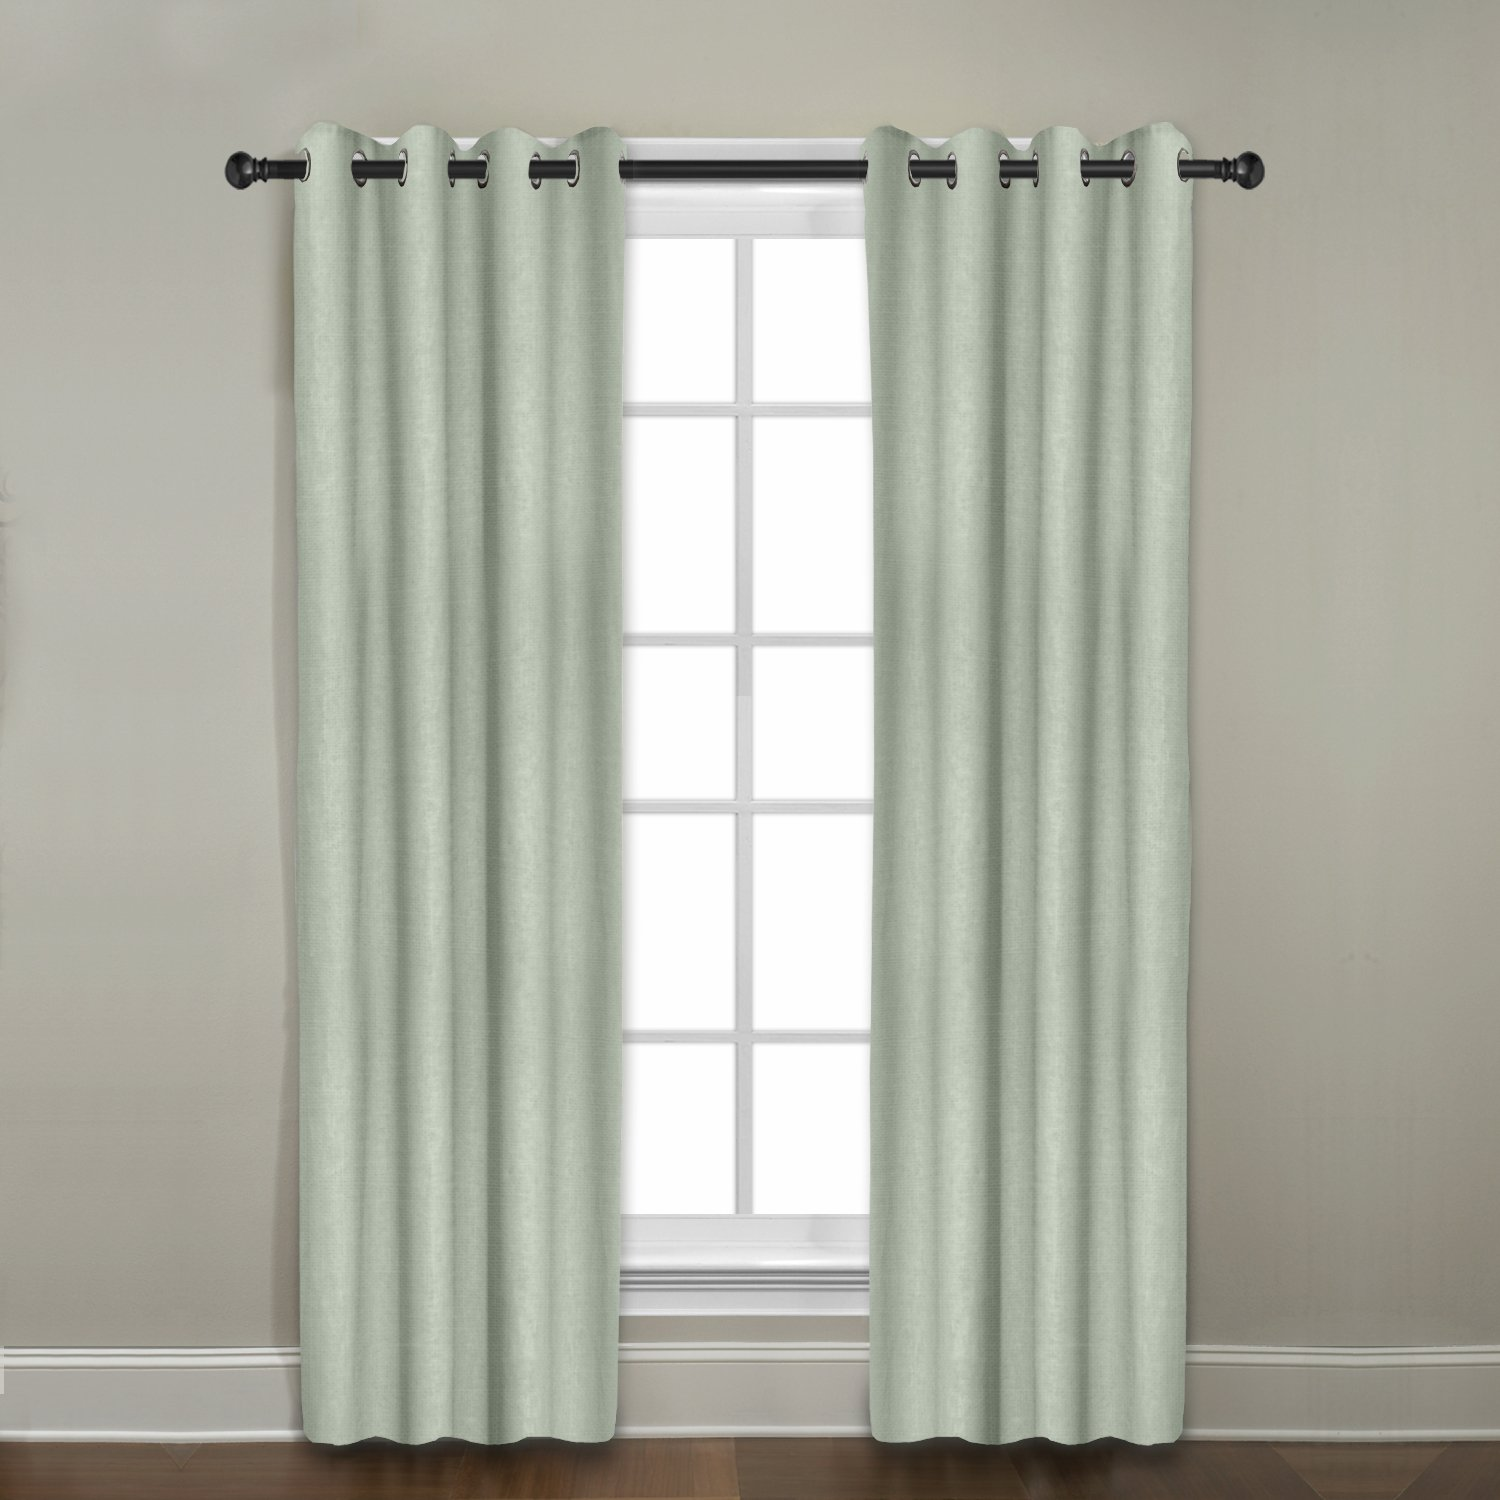 Veratex Contemporary Style 100/% Linen Construction Made In The USA Living Room Grommet Window Panel Curtain 547232 96 96 Inc Mineral Blue